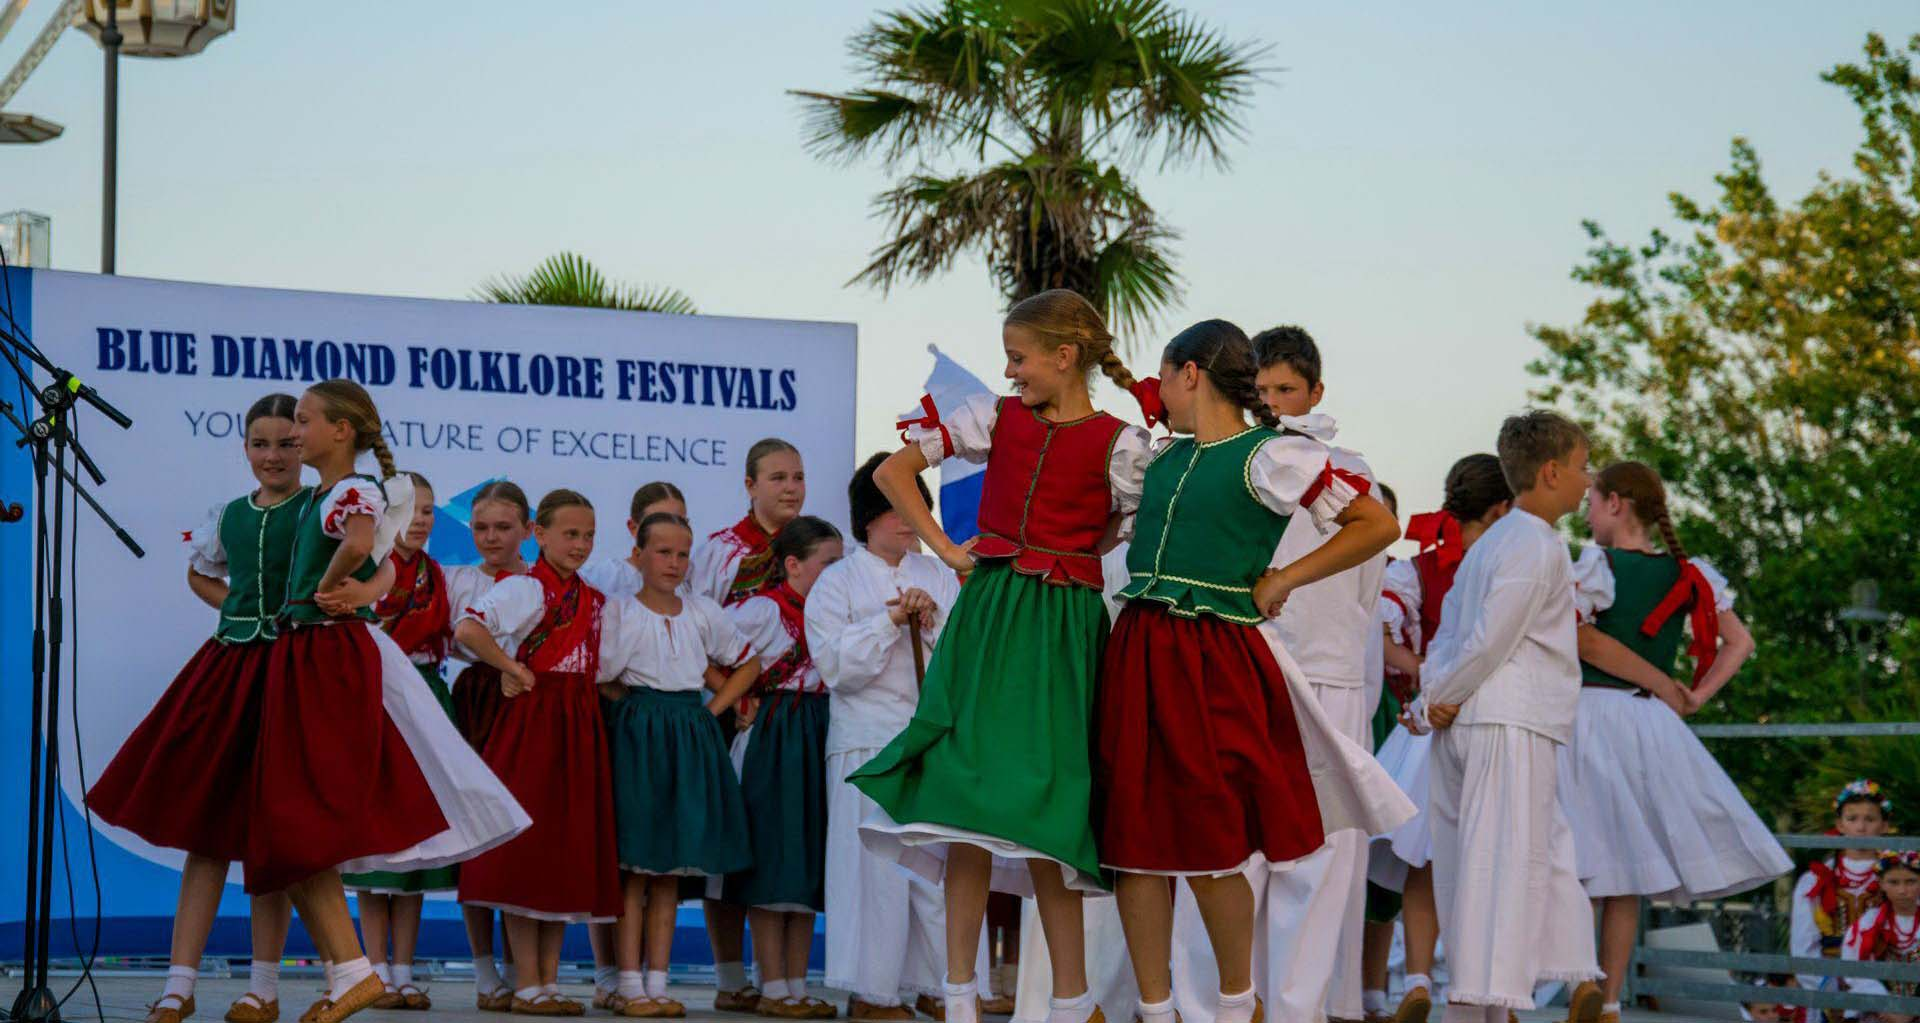 Easter folklore festival in Prague 2019 - Folklore festivals Blue Diamond